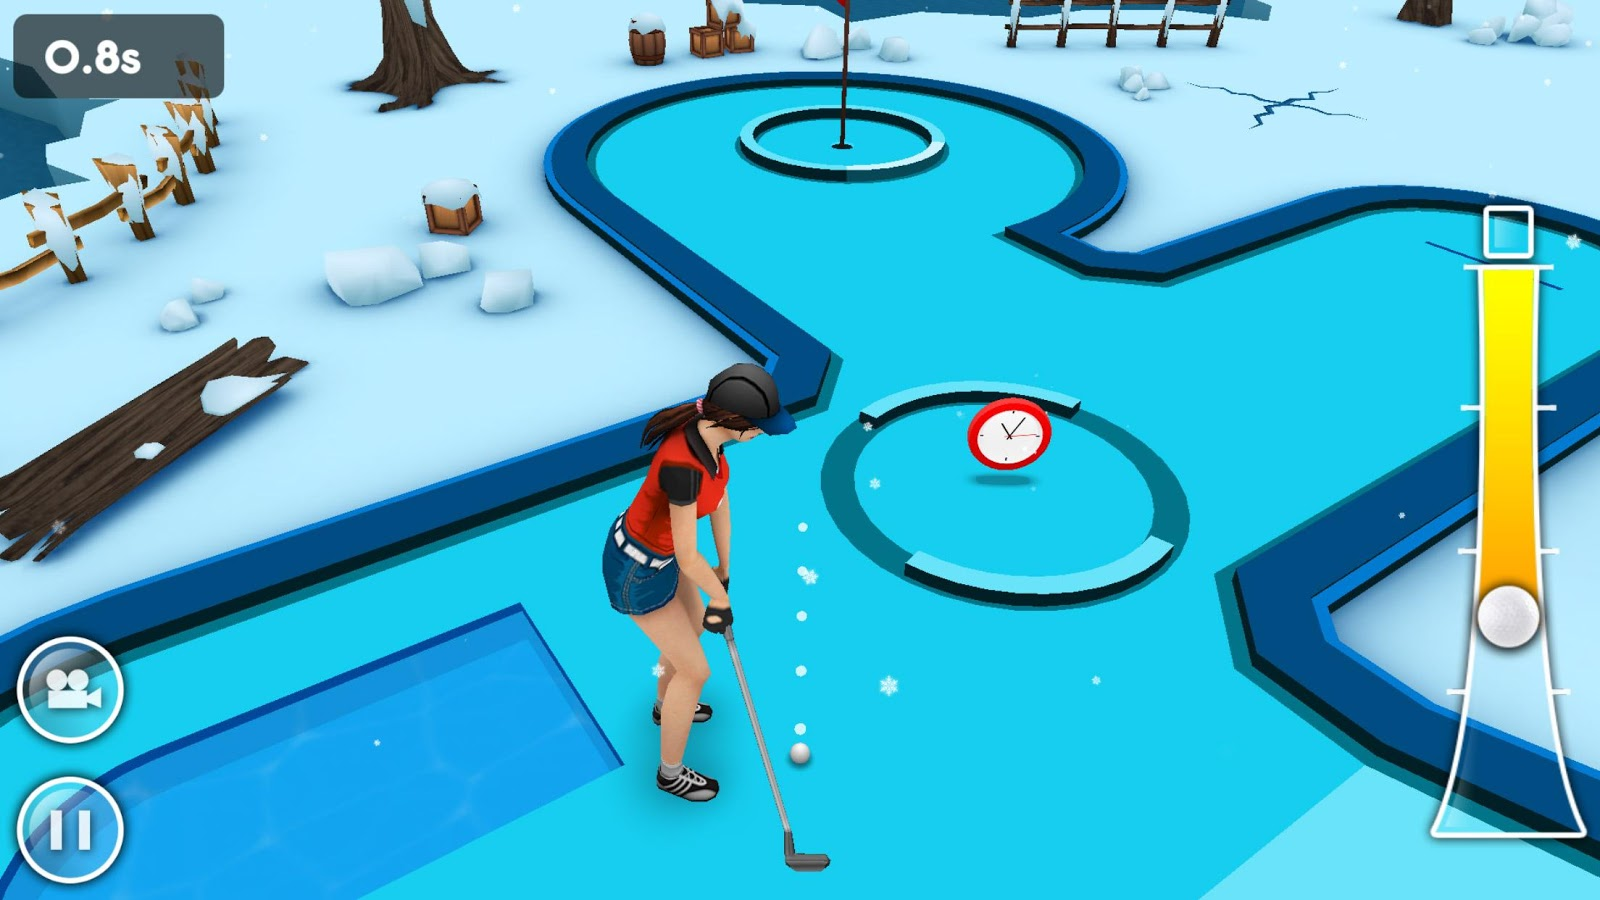 3d app games mini golf 3d android apps on play 10010